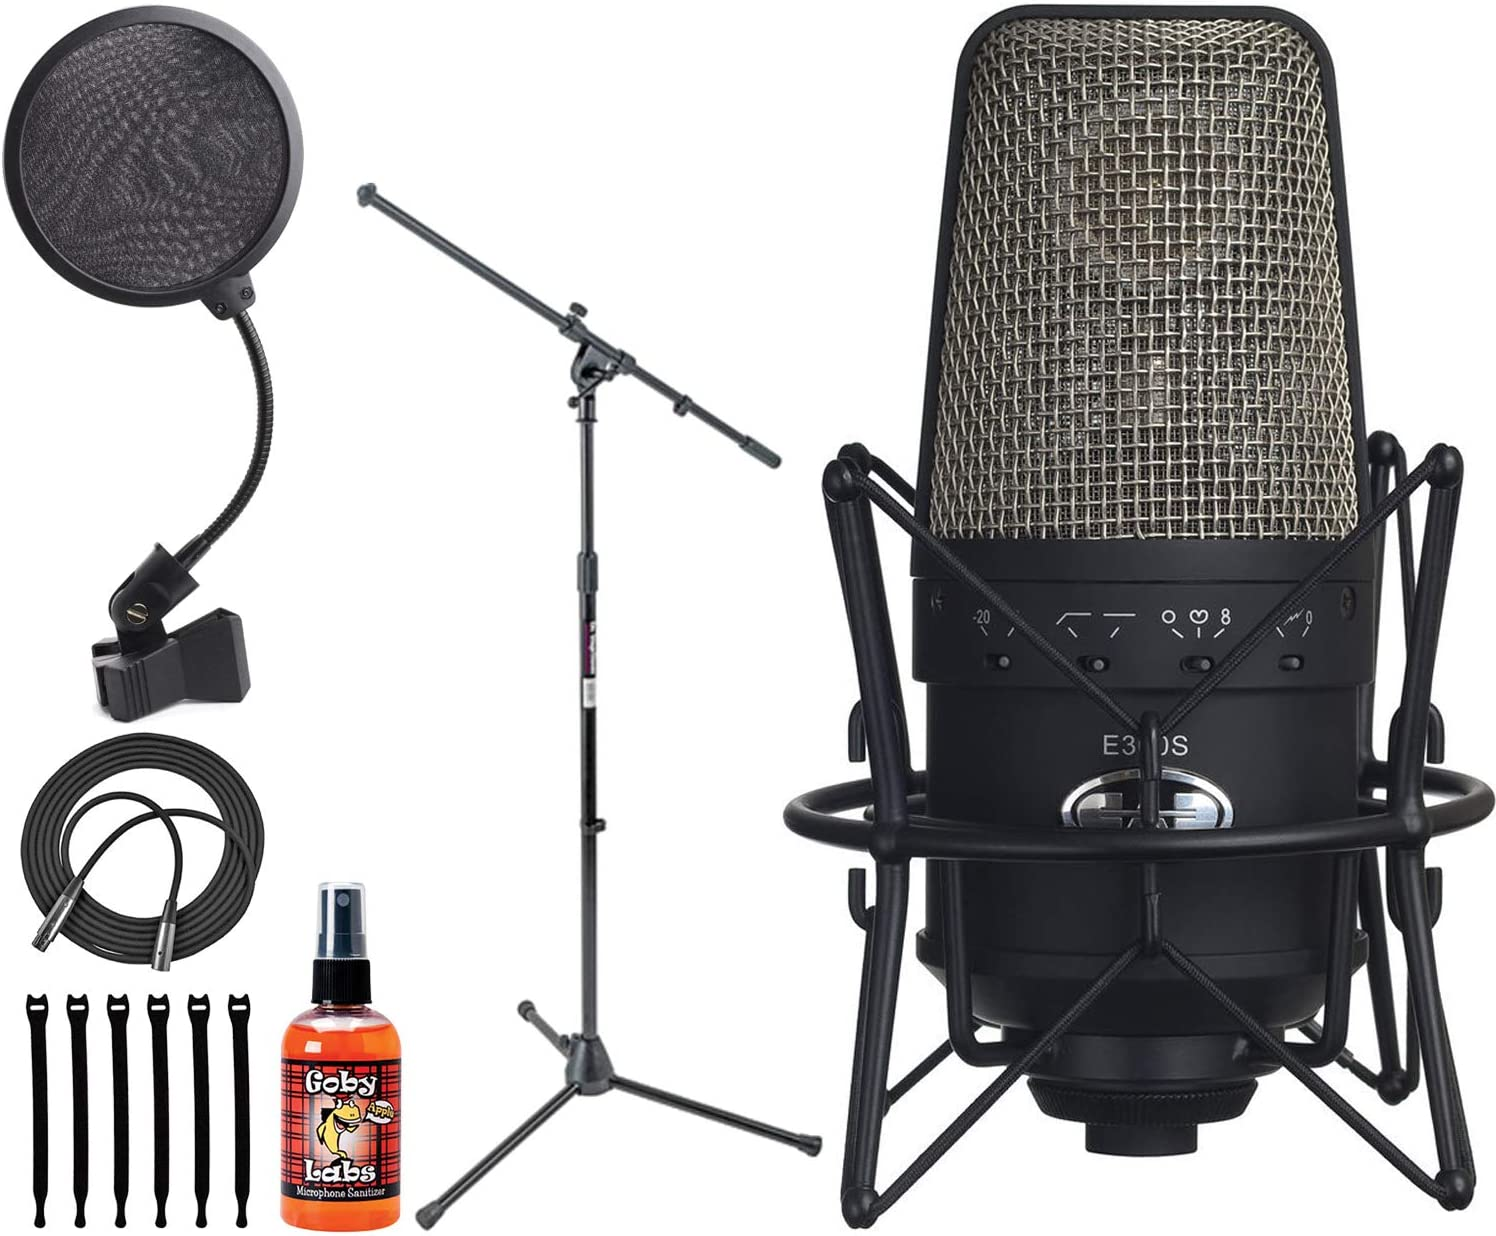 CAD Audio Equitek e300 Multi-Pattern Condenser Microphone (Black) + On Stage 4-Inch Pop Filter + On Stage Euro Boom Mic Stand + Op/Tech Strapeez + XLR Mic Cable + Mic Sanitizer